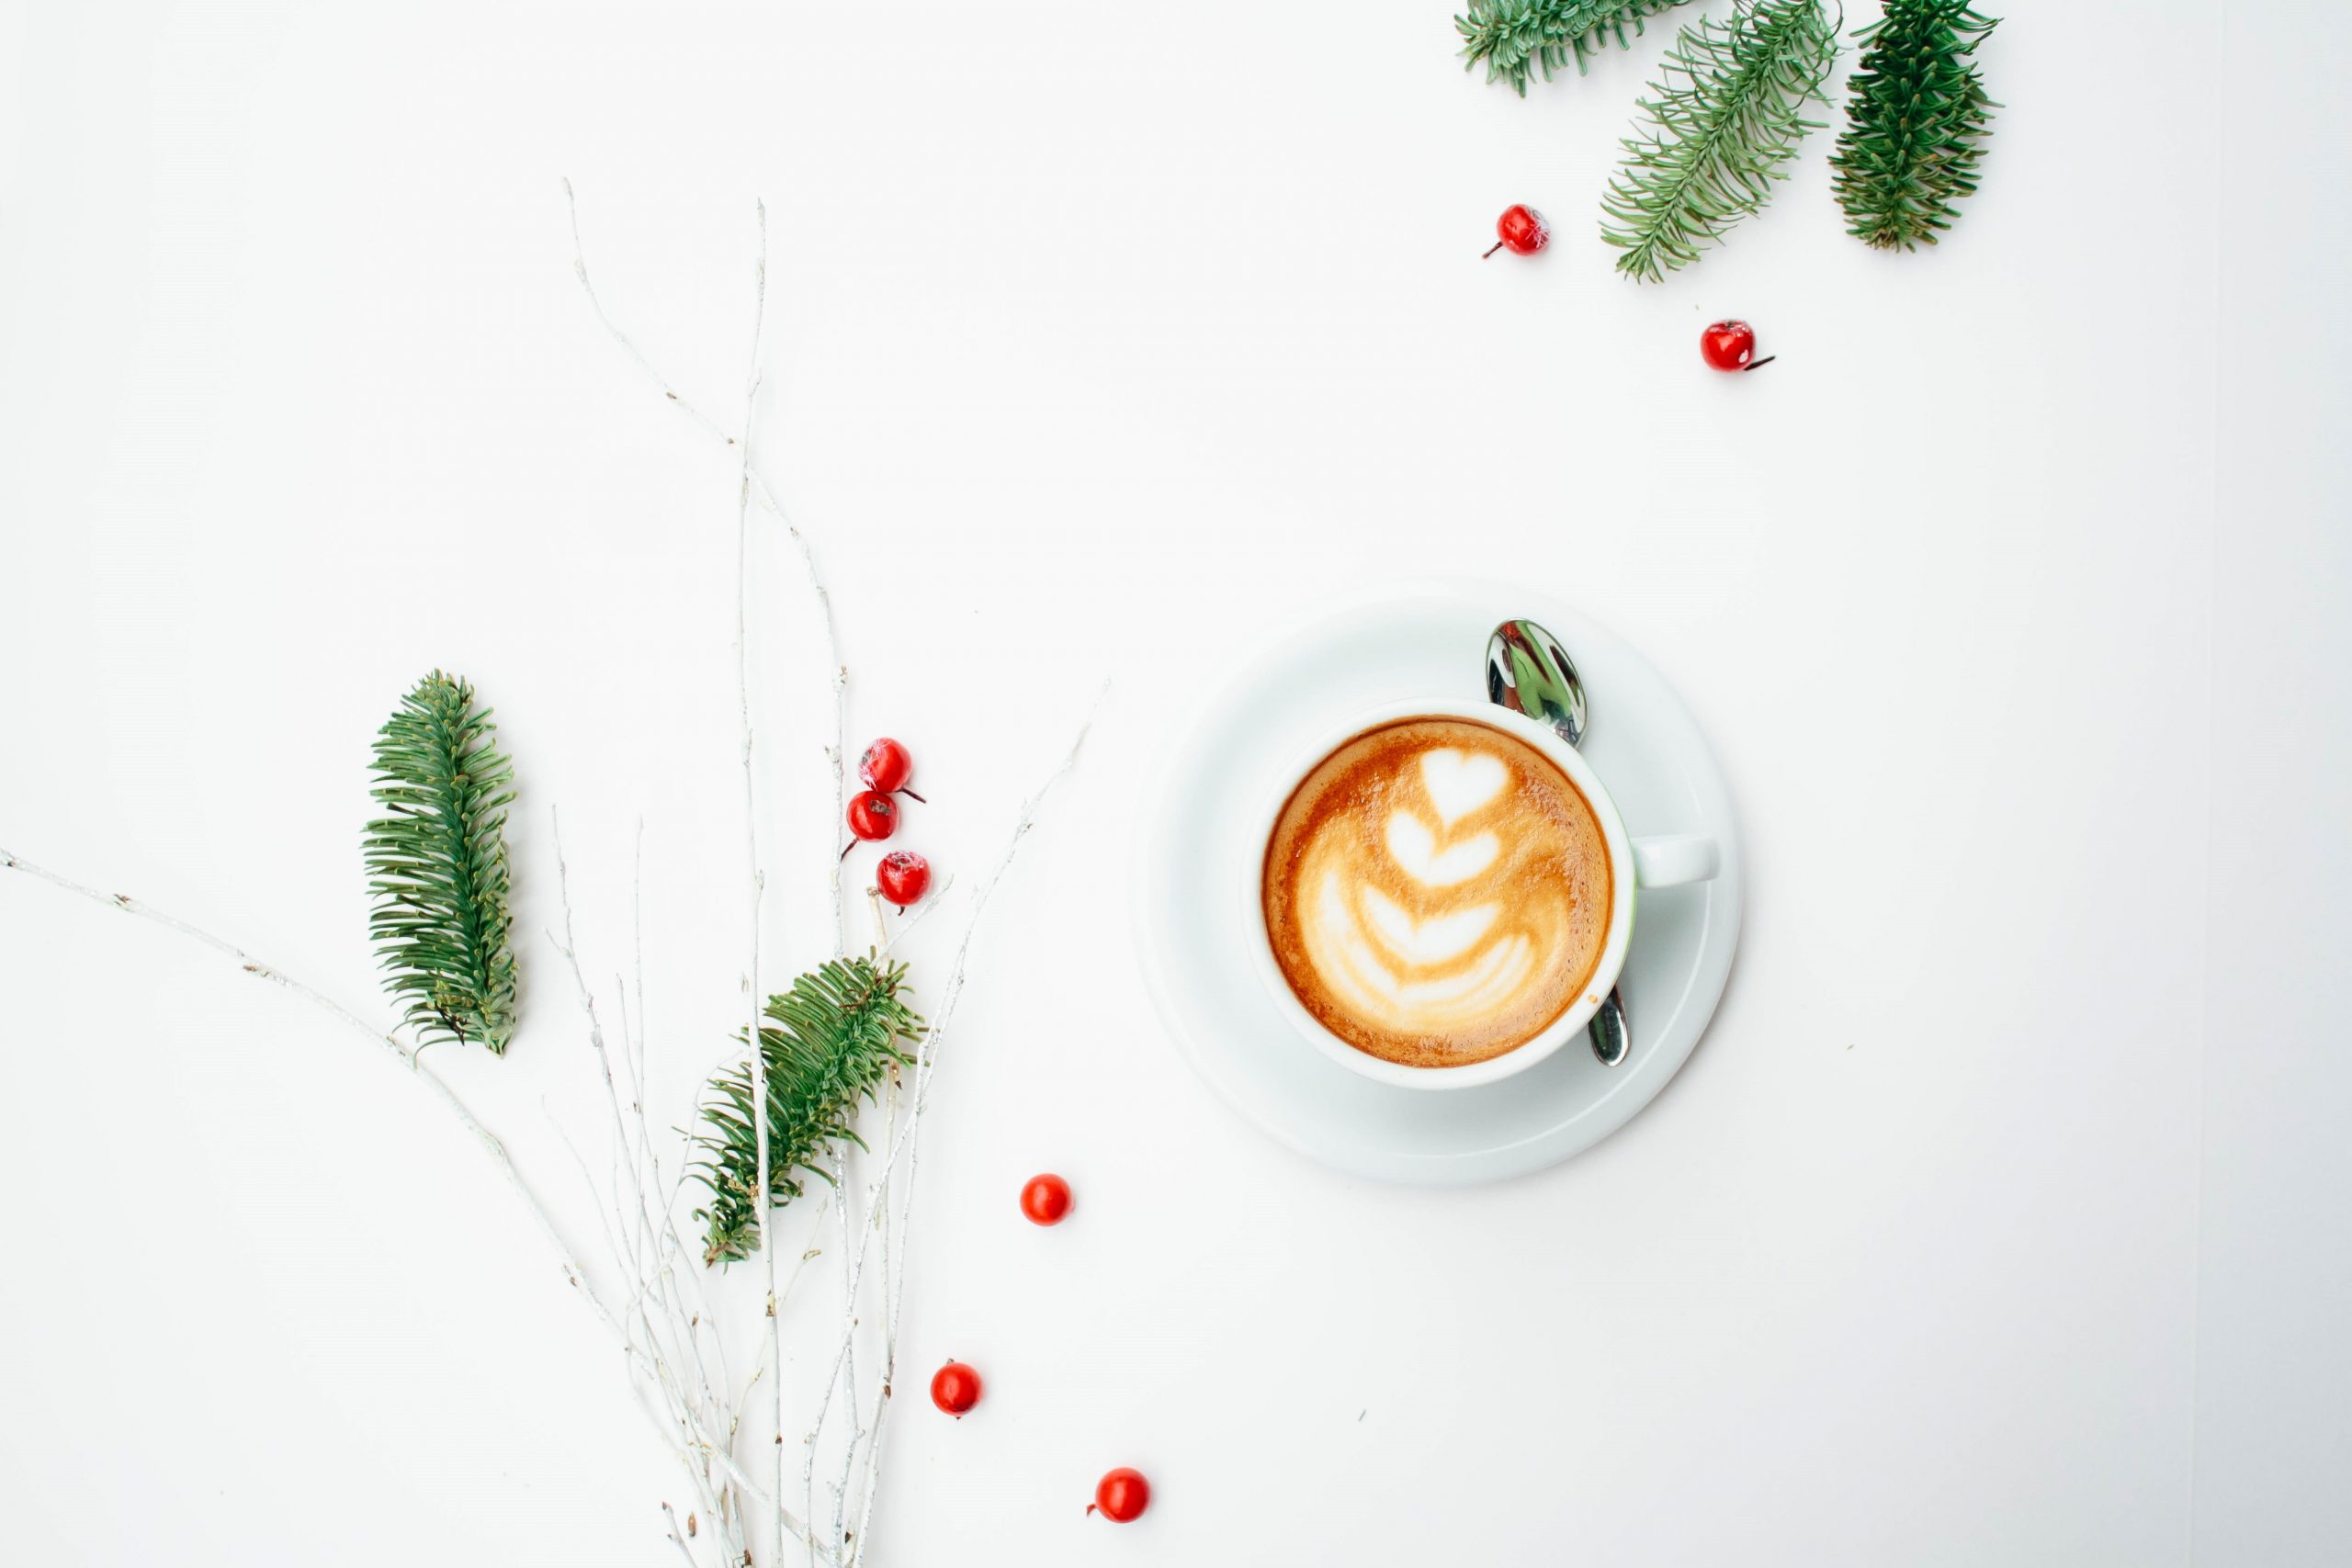 Cappuccino in a white cup on a marbeled surface with christmas decorations